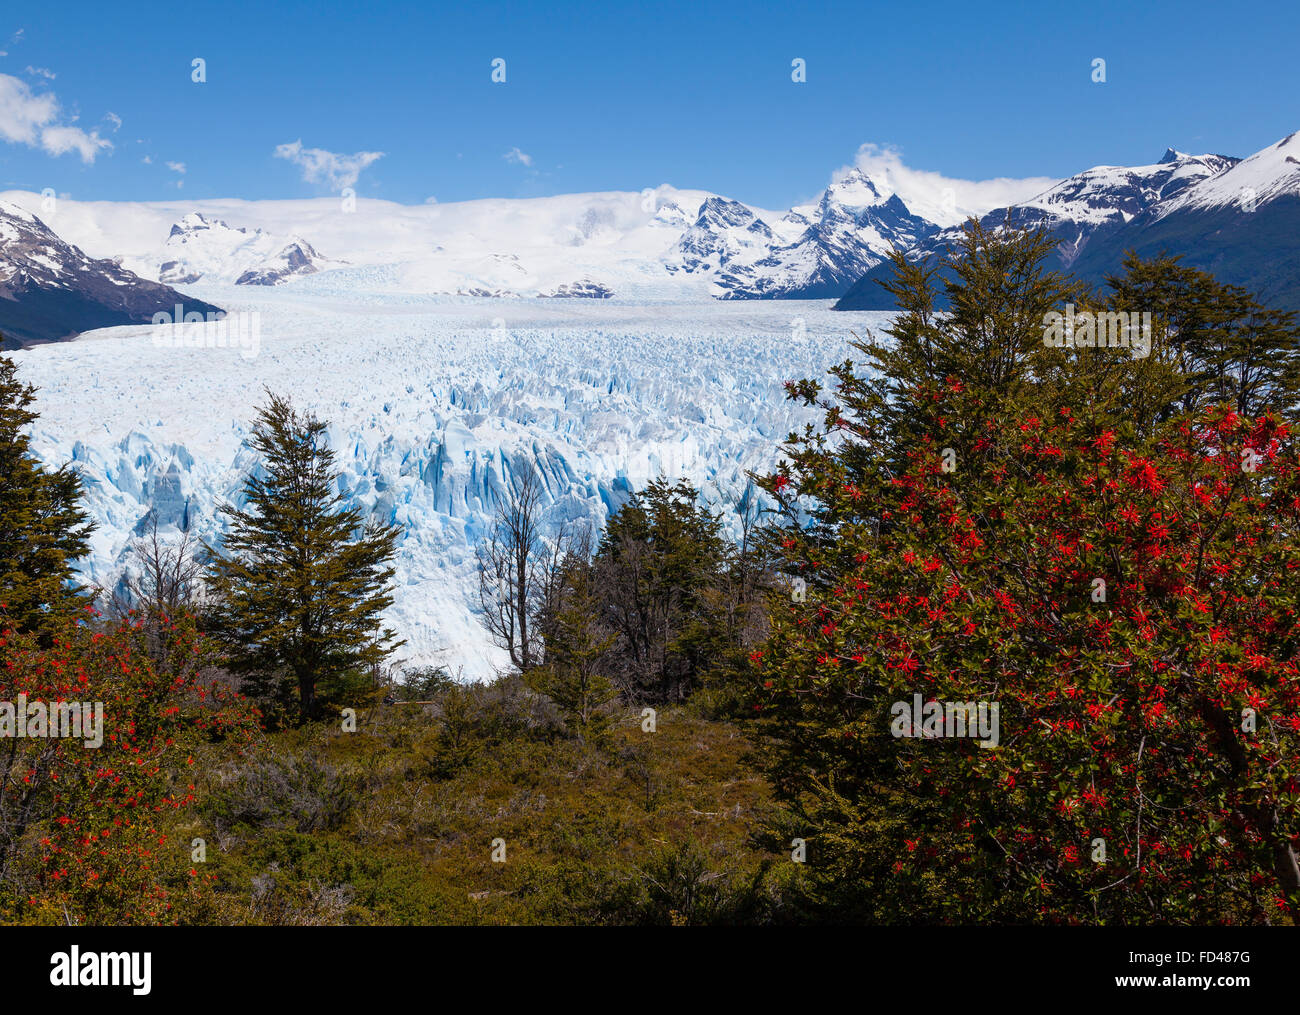 Moreno avec fire bush arbuste, Patagonie, Argentine Photo Stock